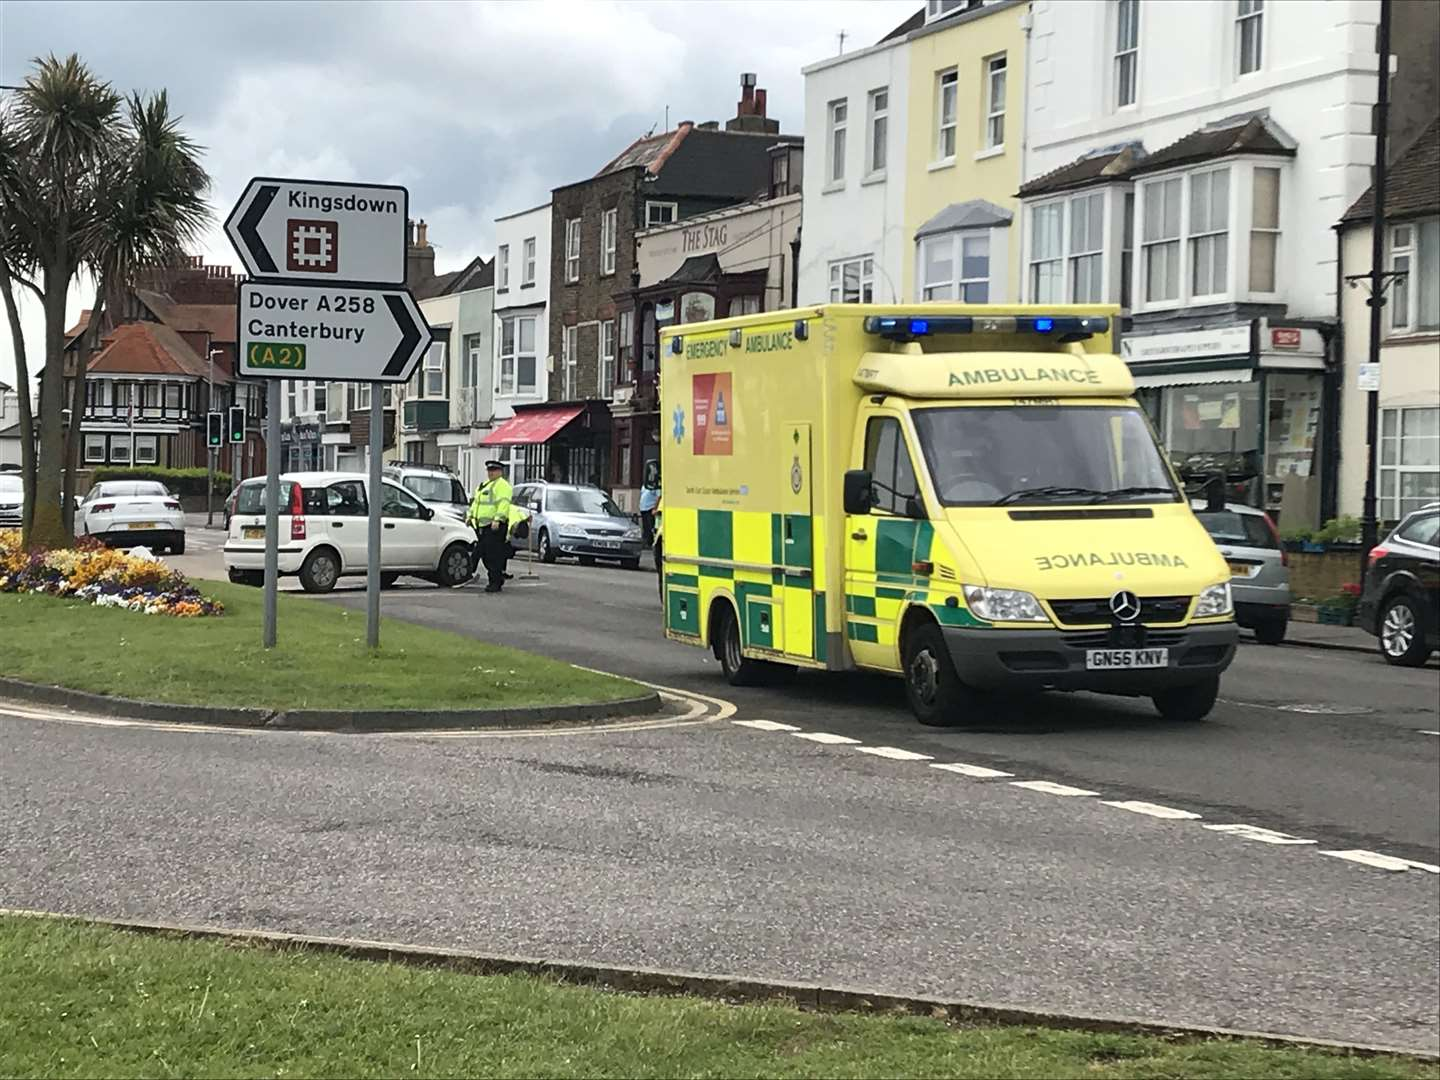 Medics were at the scene. Pic: Ellie Perkins